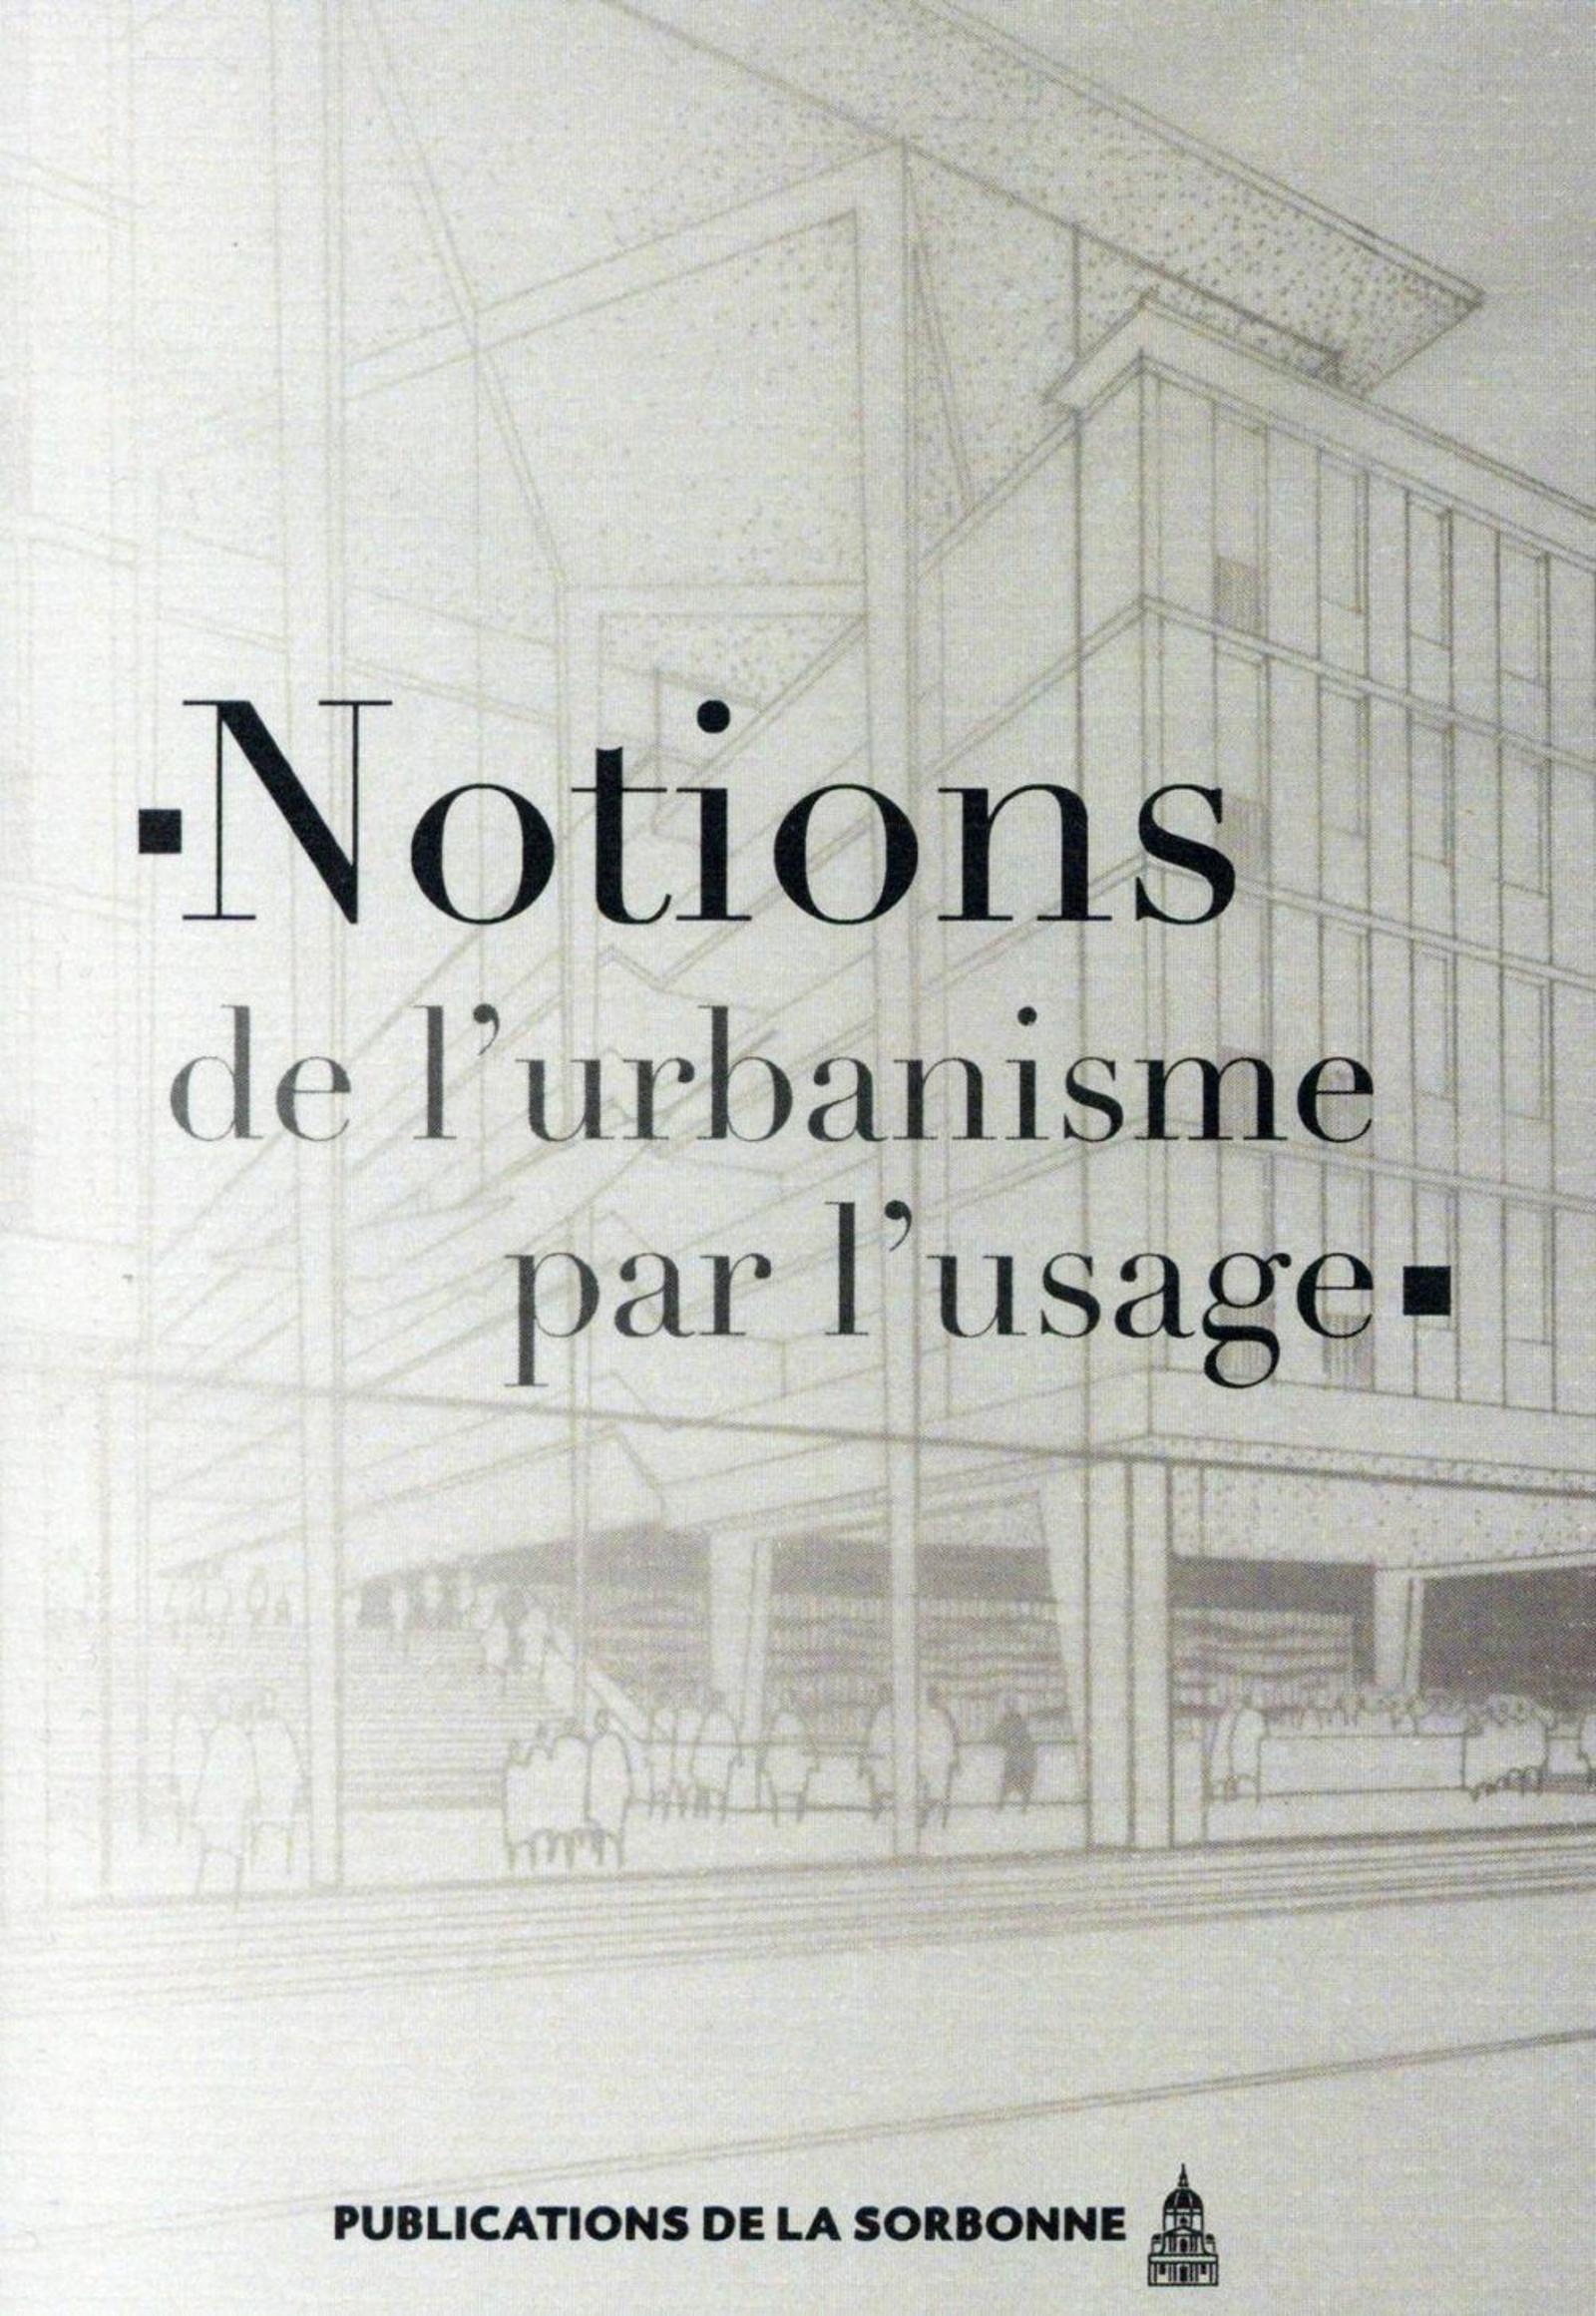 NOTIONS D URBANISME PAR L' USAGE